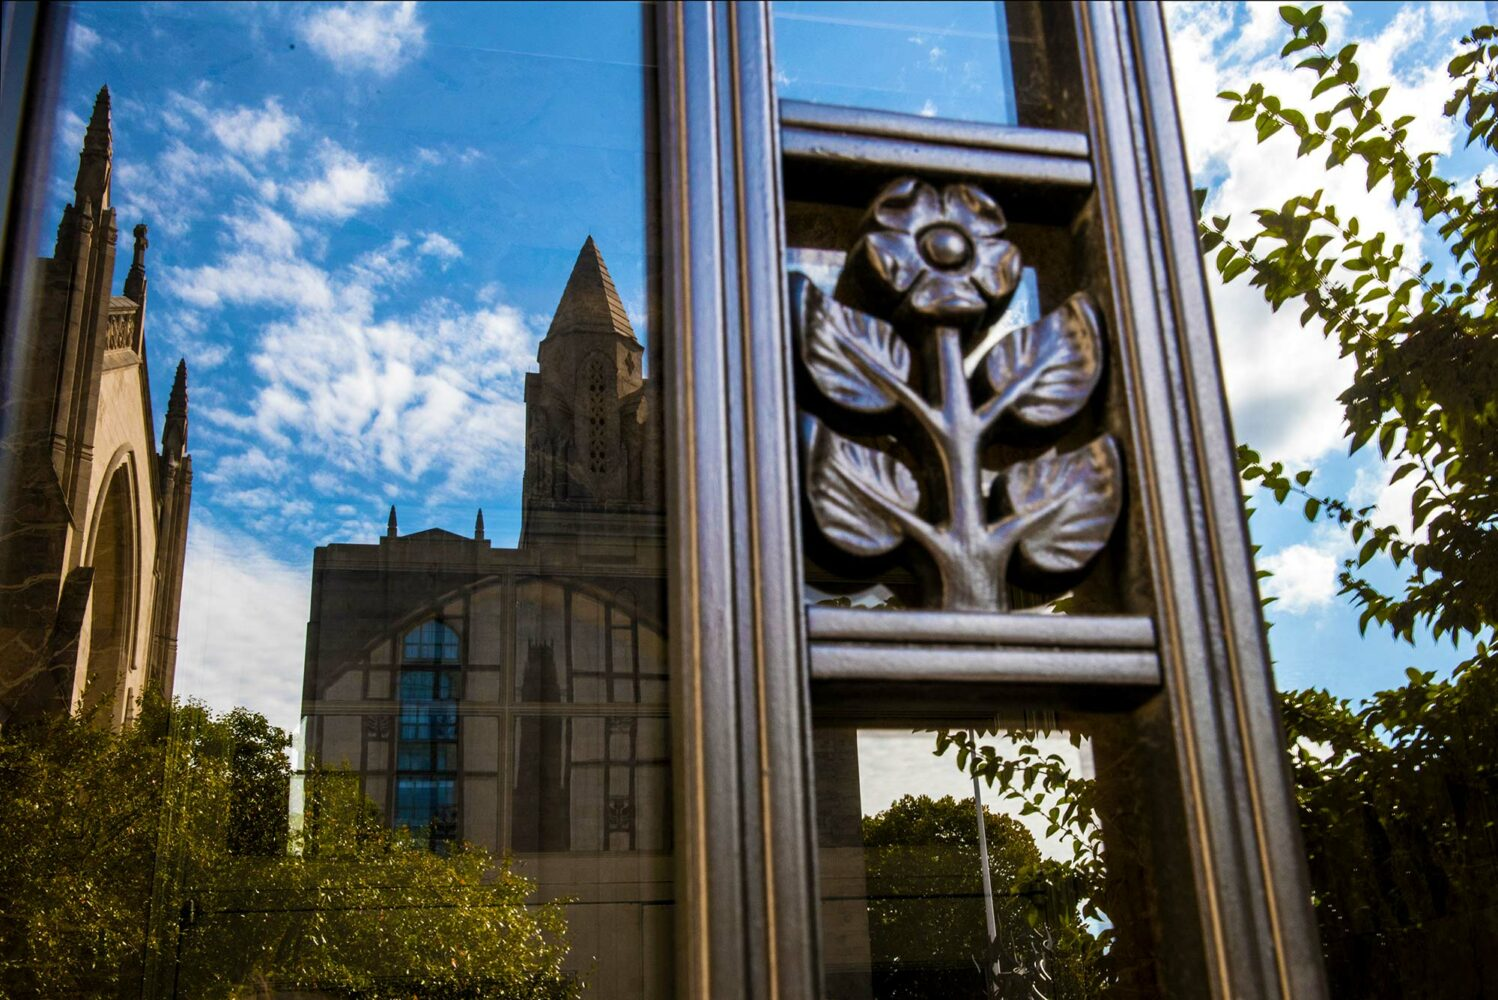 Photo of an ornate metal window grate with a flower design. Marsh Chapel and CAS are reflected in the window. The sky is bright blue and has a few clouds; a tree and other greenery is also reflected.